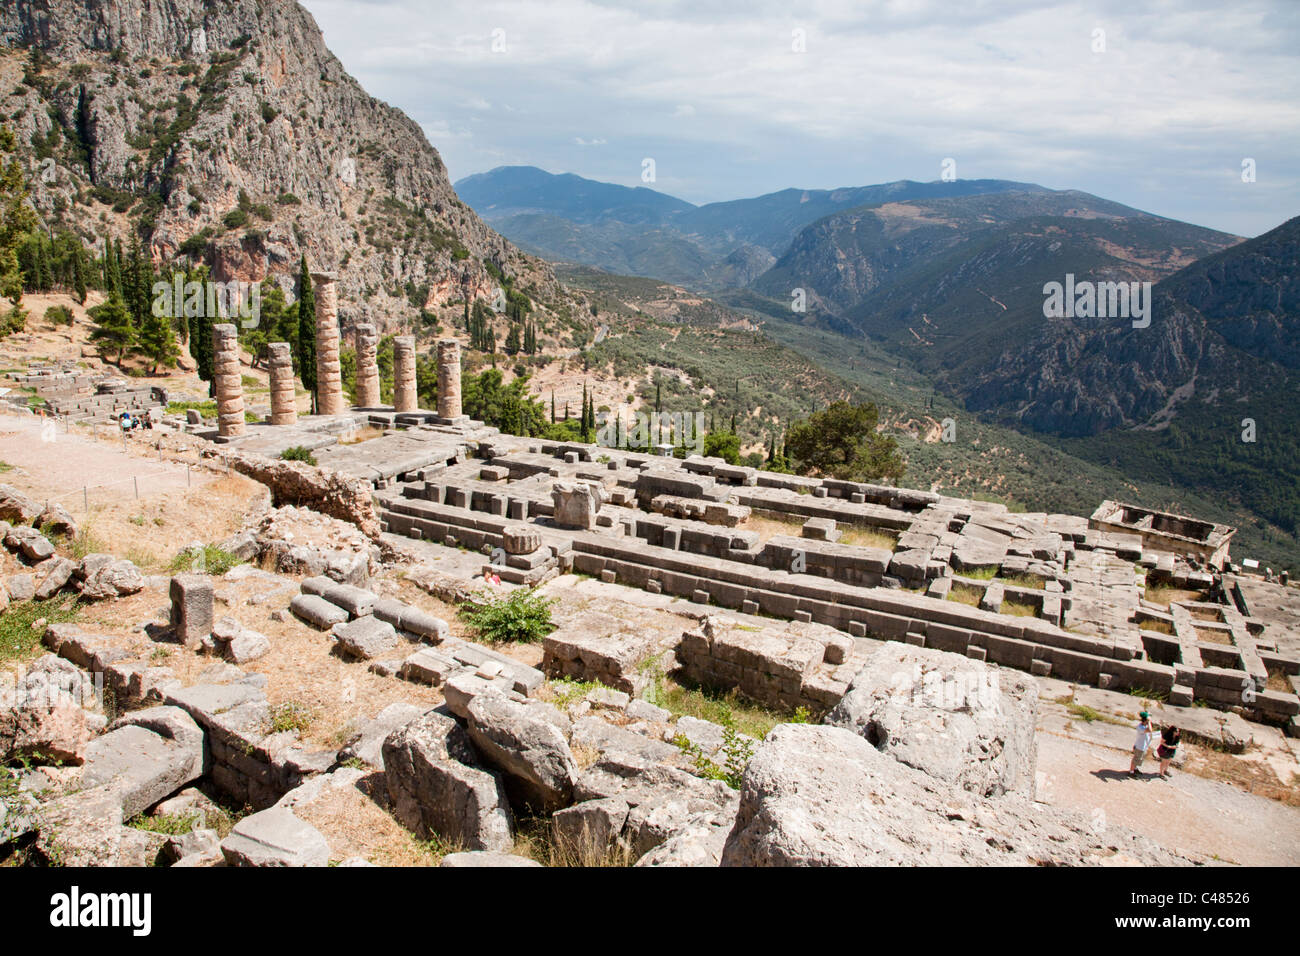 The Temple of Apollo, Delphi Greece Stock Photo